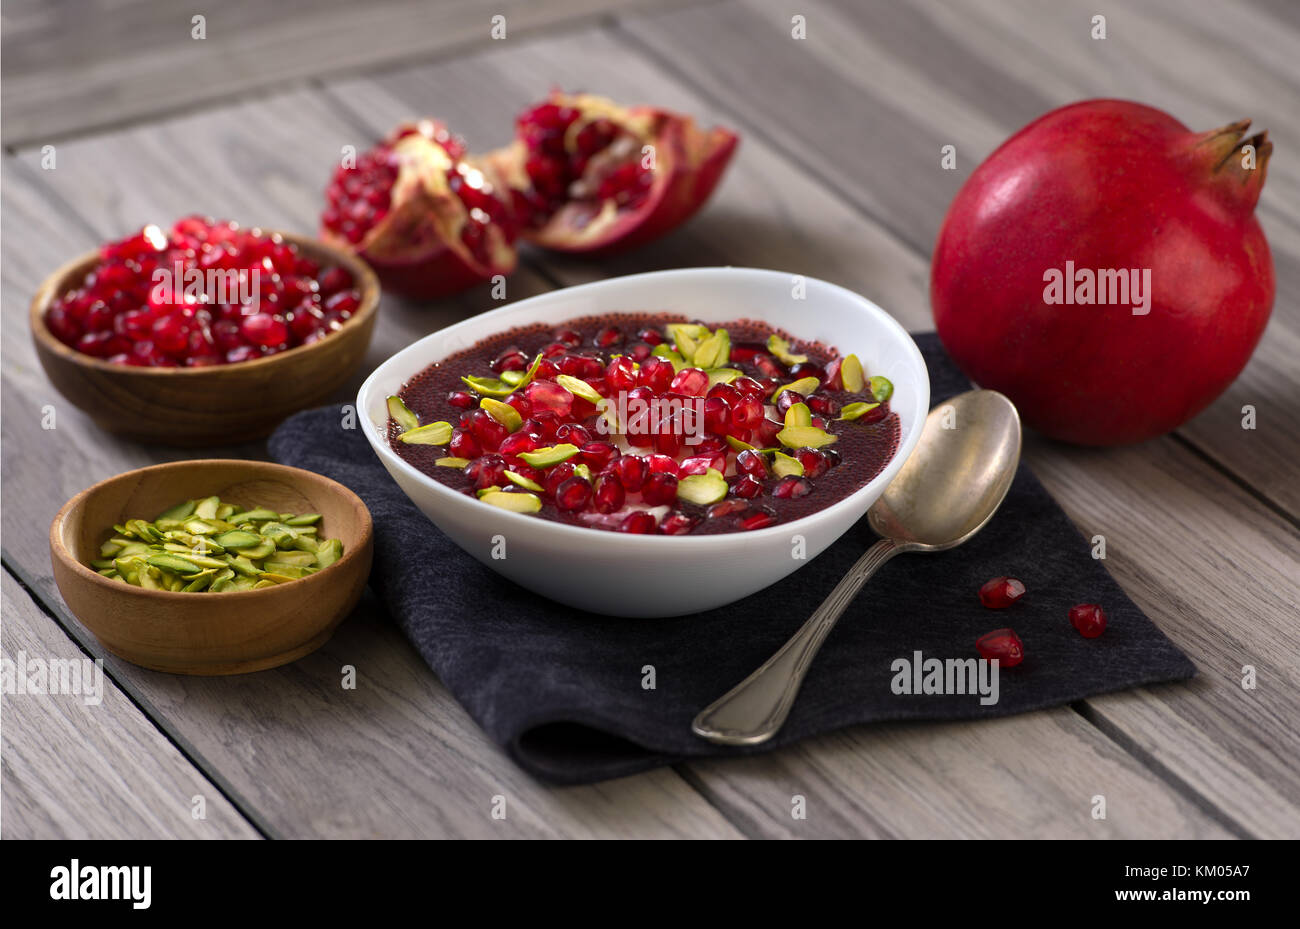 Pomegranate desert with Chia Seed, tapioca pudding and Yogurt. healthy eating. - Stock Image